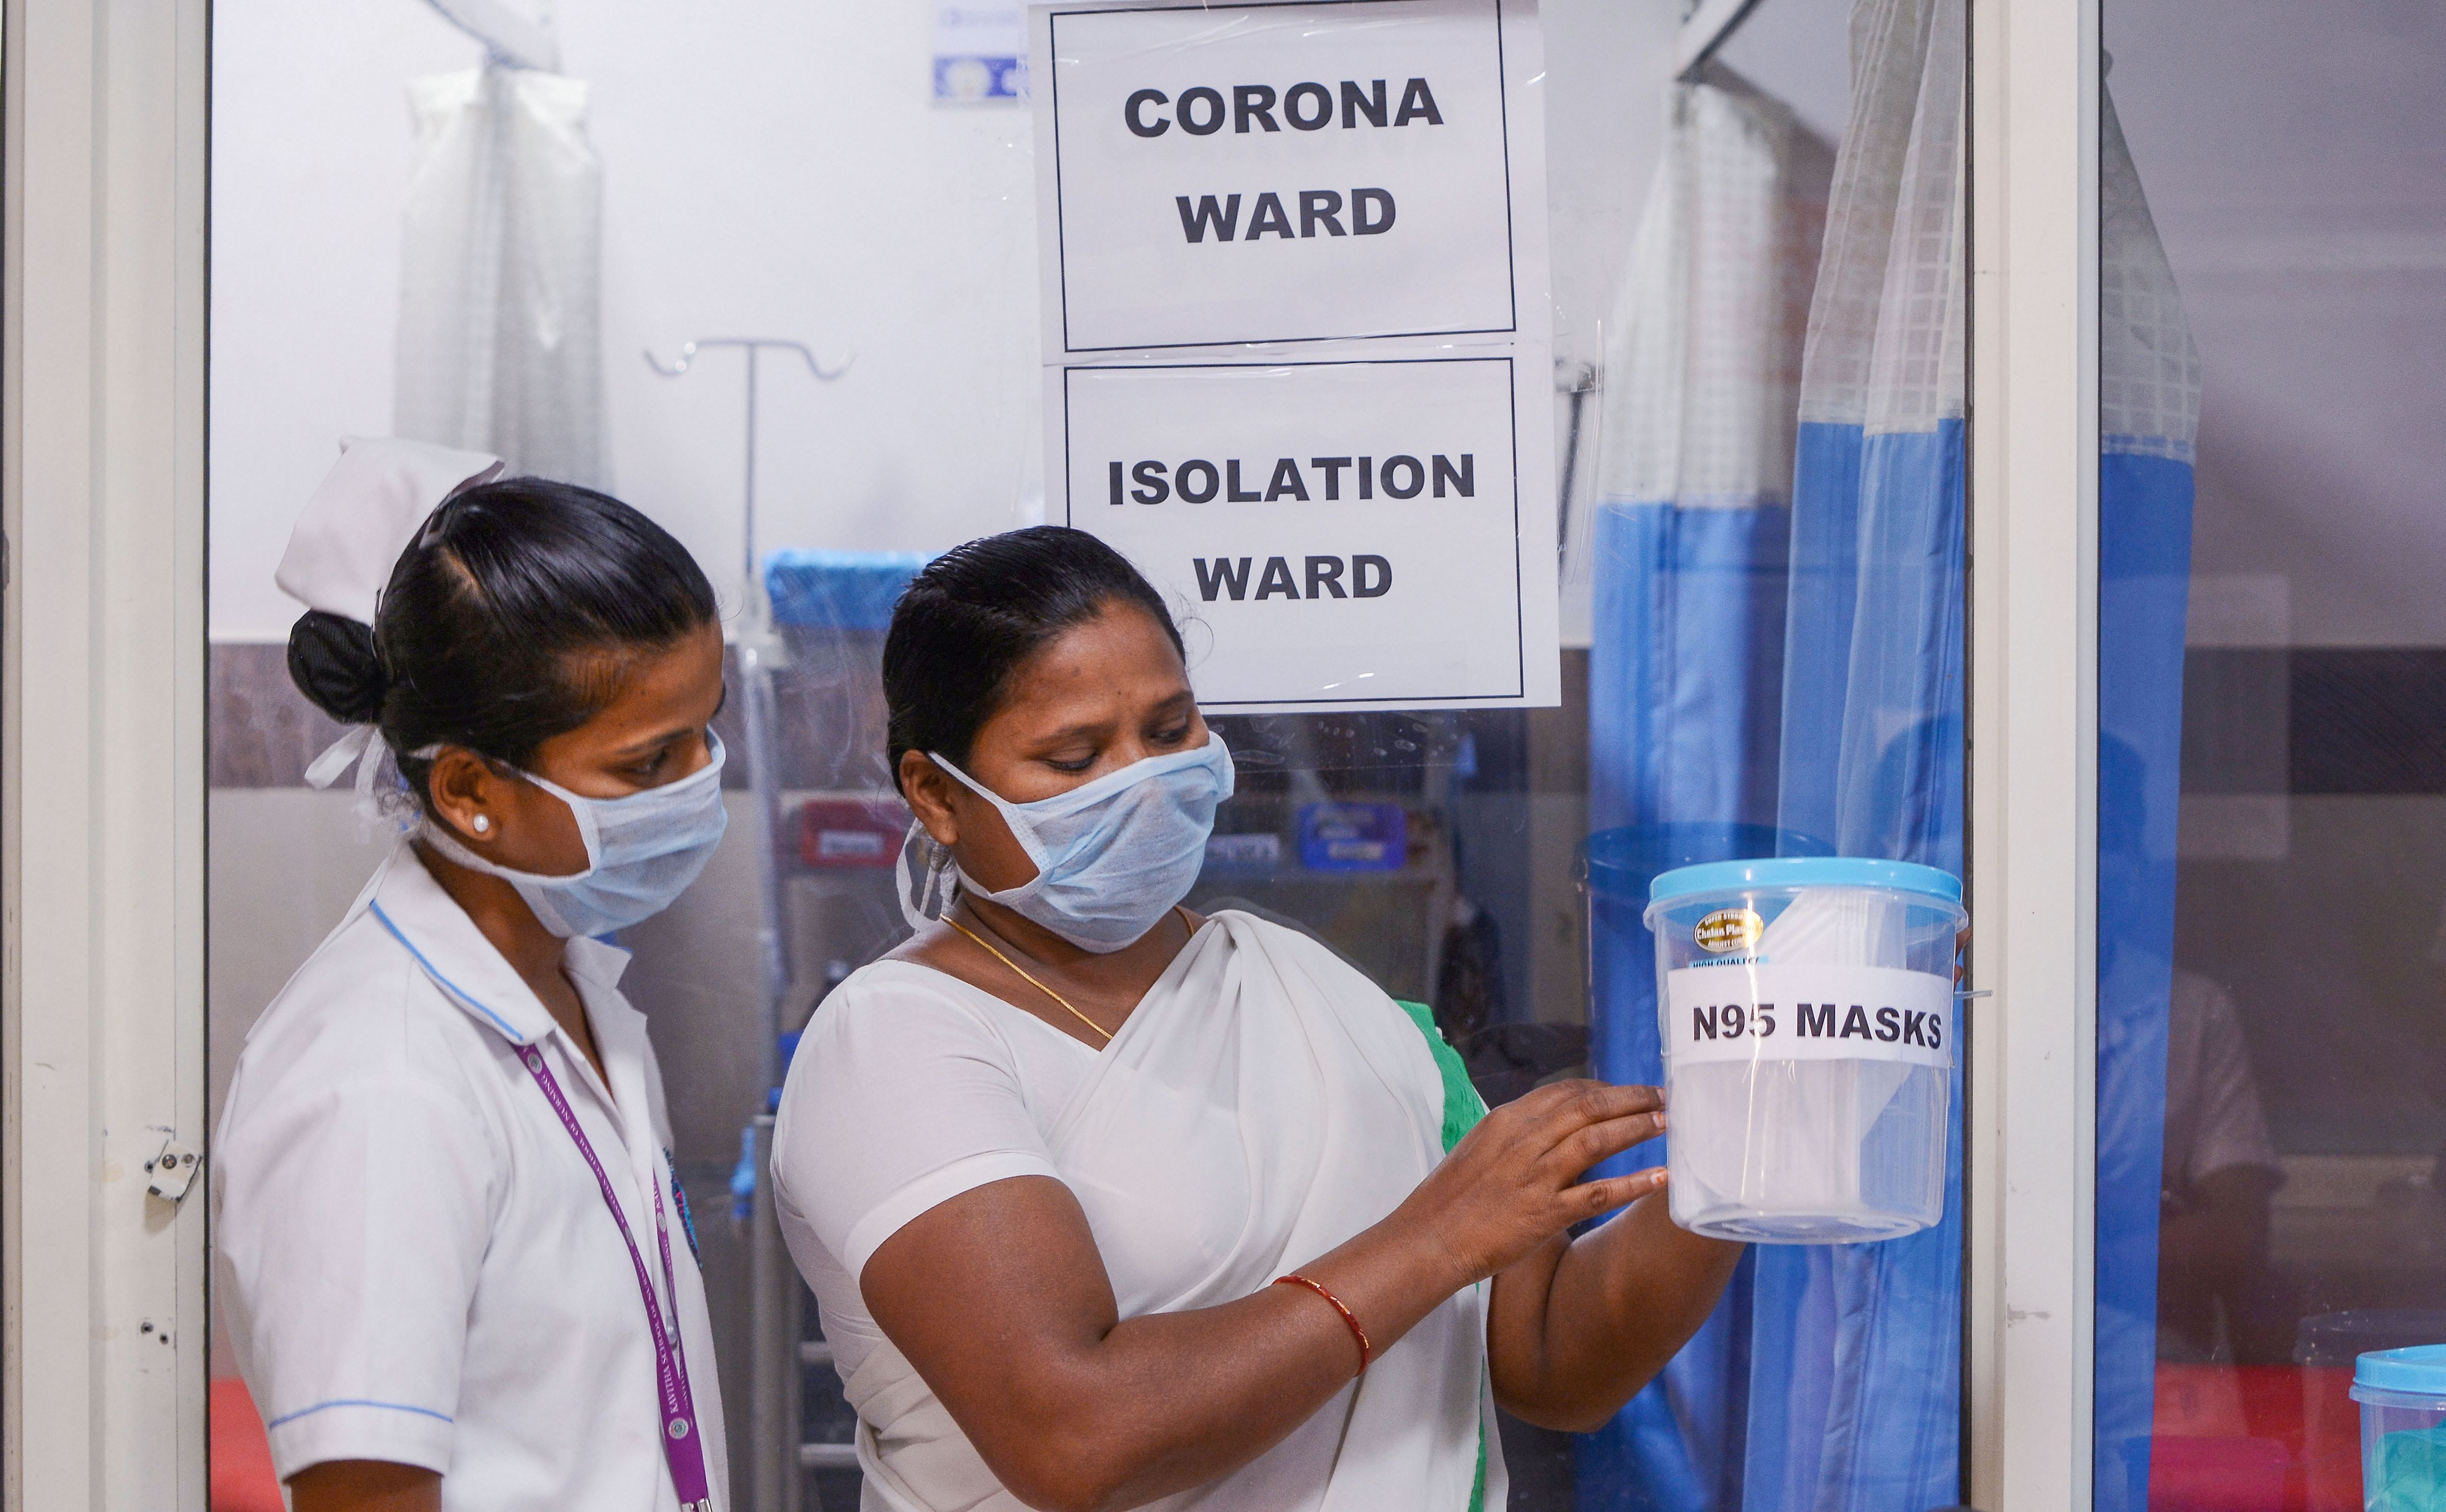 In this file photo taken on Saturday, February 1, 2020, in Vjaywada, nurses look at N95 masks inside a Coronavirus ward at a government hospital. A man flying from Delhi was admitted to an isolation ward of Naidu Hospital in Pune on Friday for possible exposure to novel coronavirus.